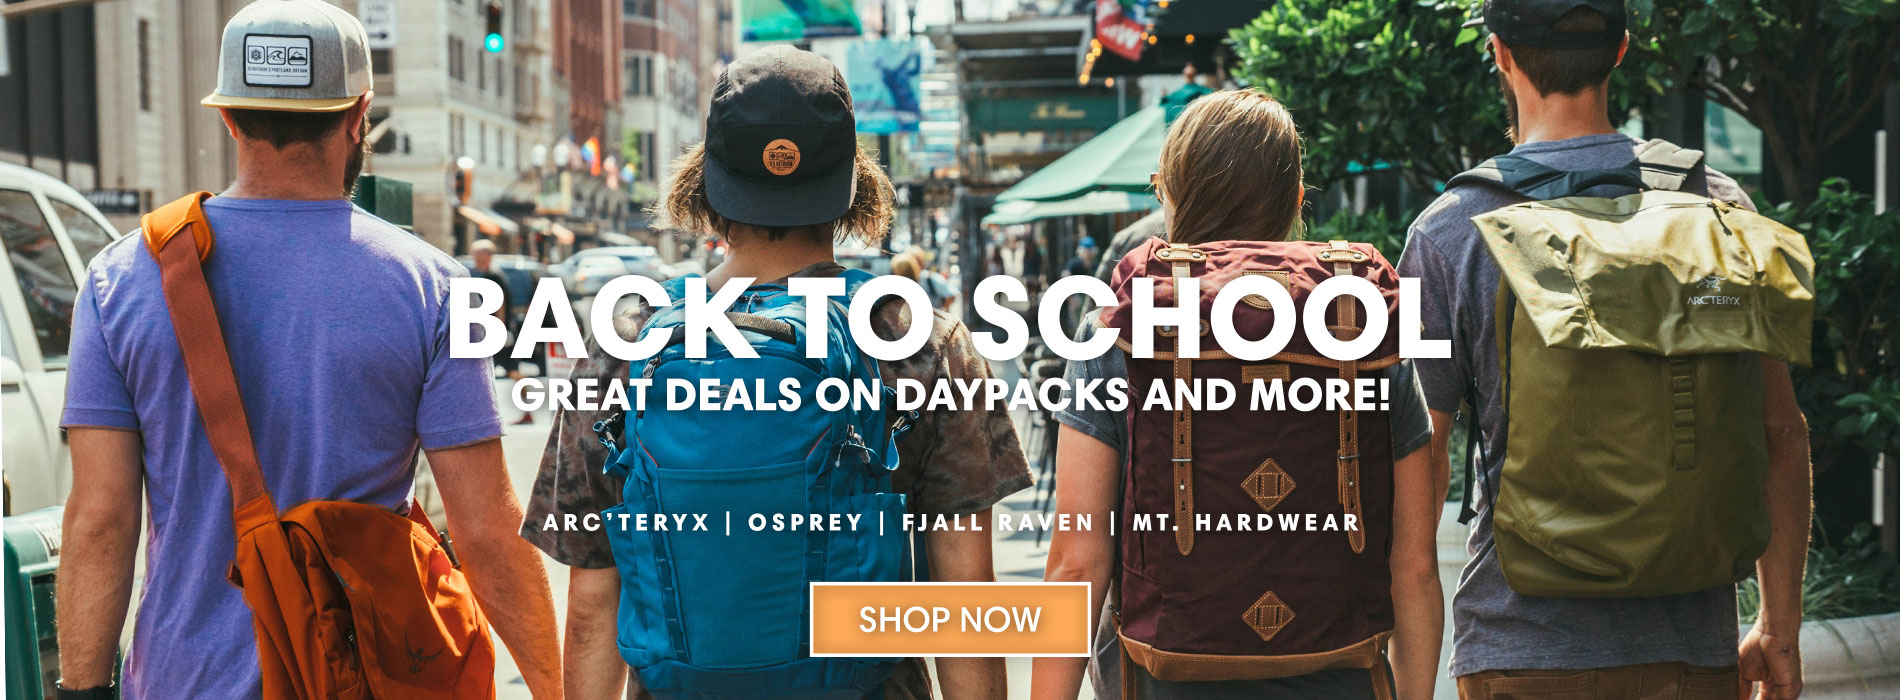 2017 Back To School Daypacks